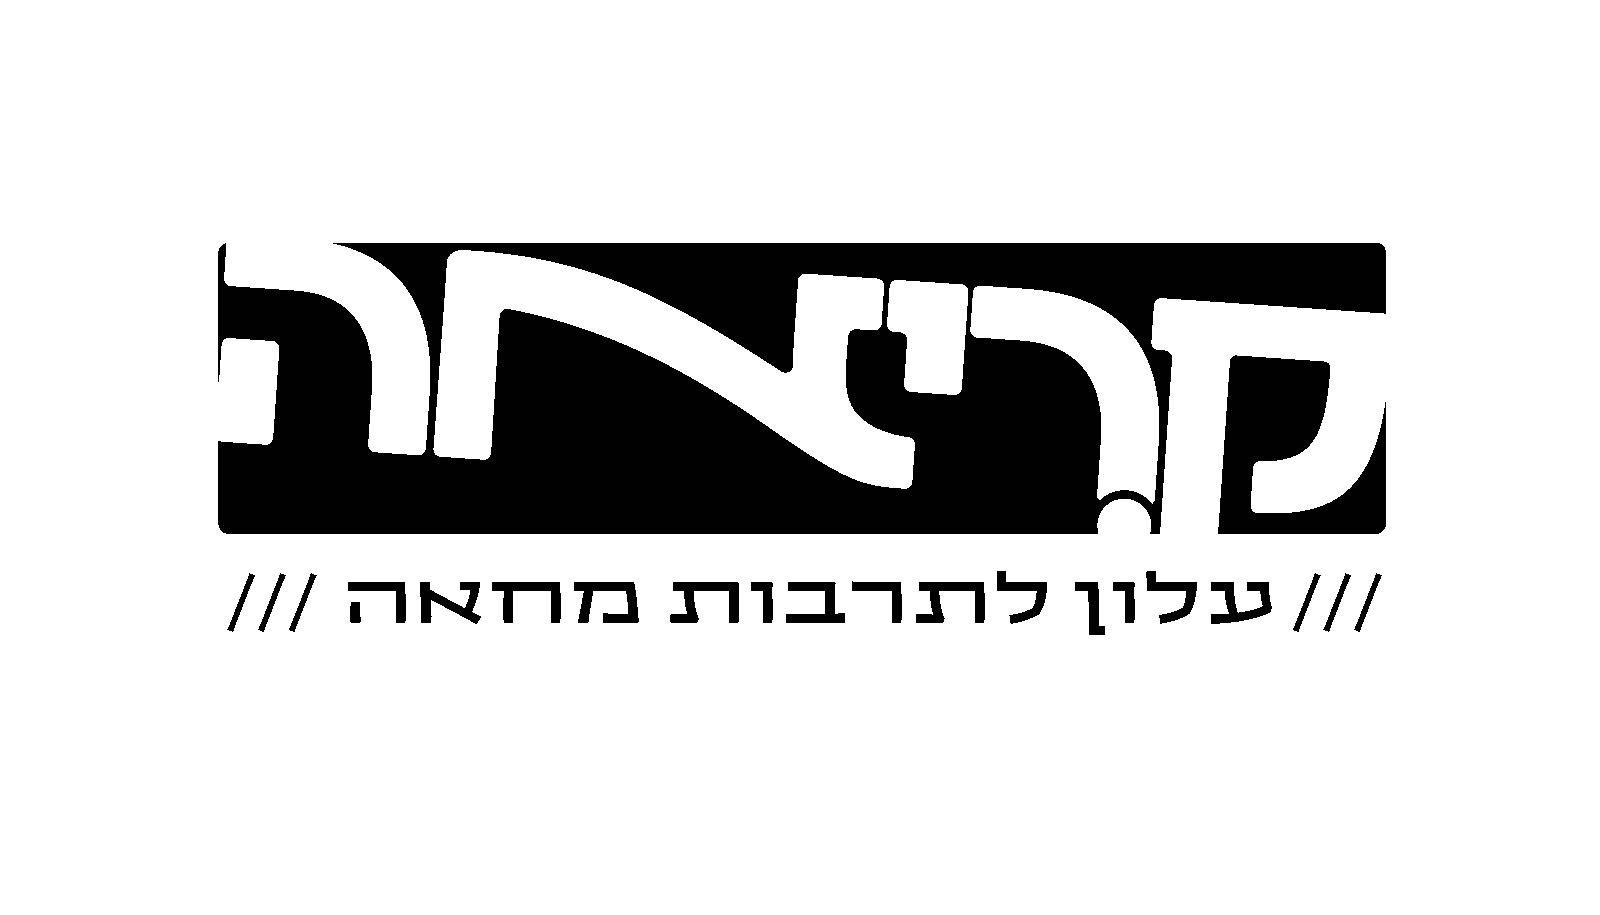 https://bigeyes.co.il/wp-content/uploads/2020/10/kriaa-logo.png